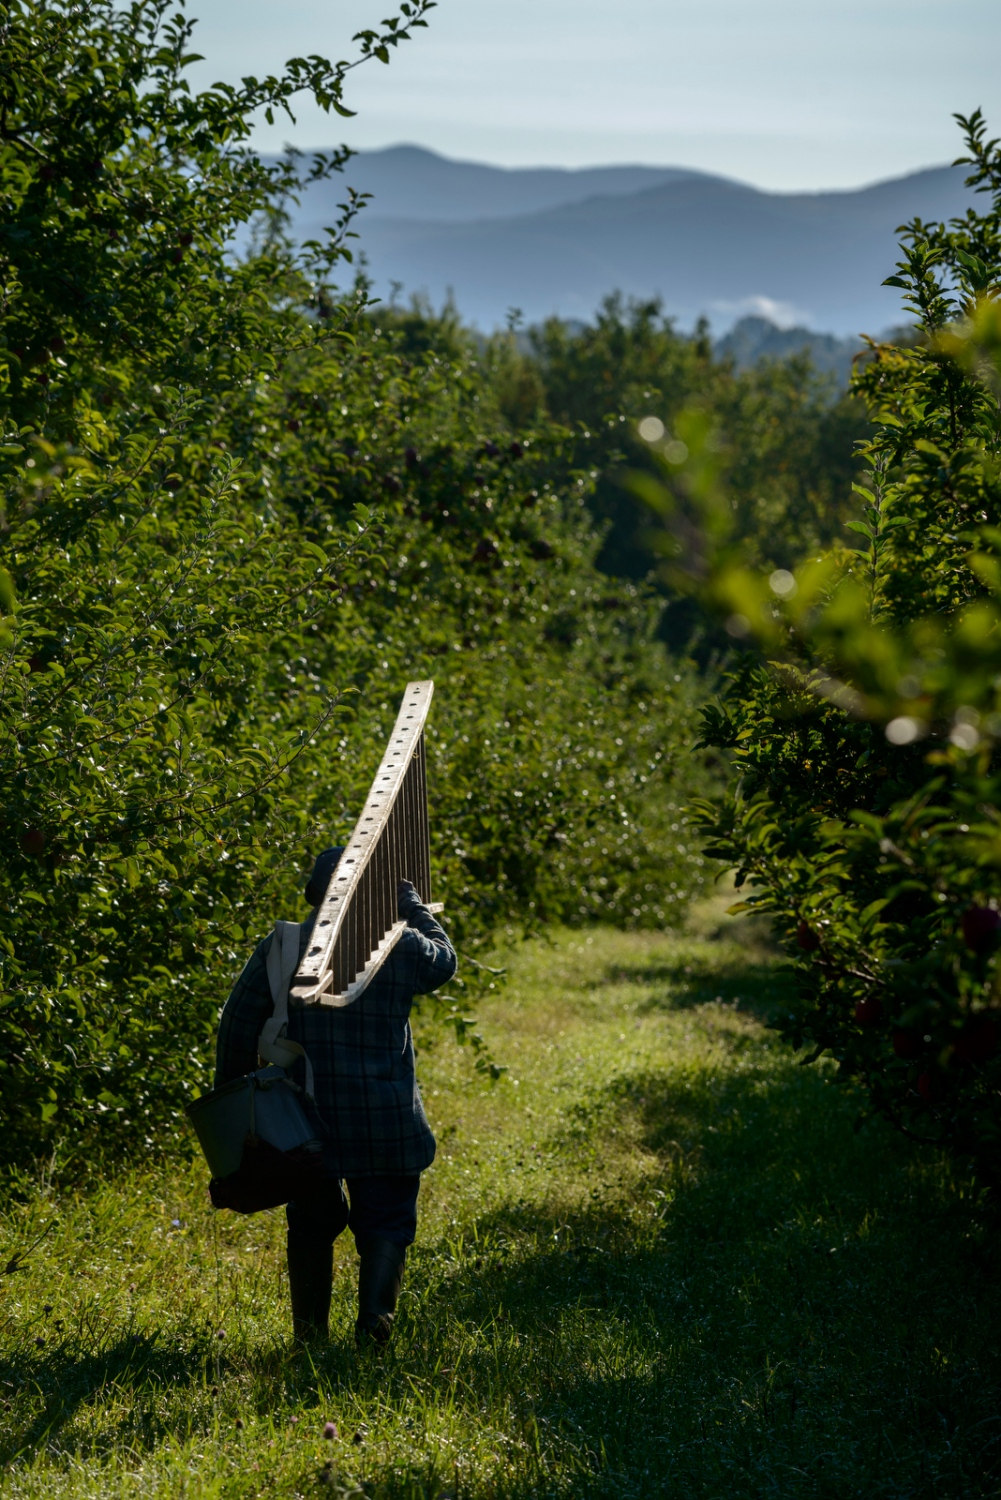 Winston Howe of Clarendon, Jamaica carries an apple ladder to pick apples at Sunrise Orchards, Cornwall, Vermont.